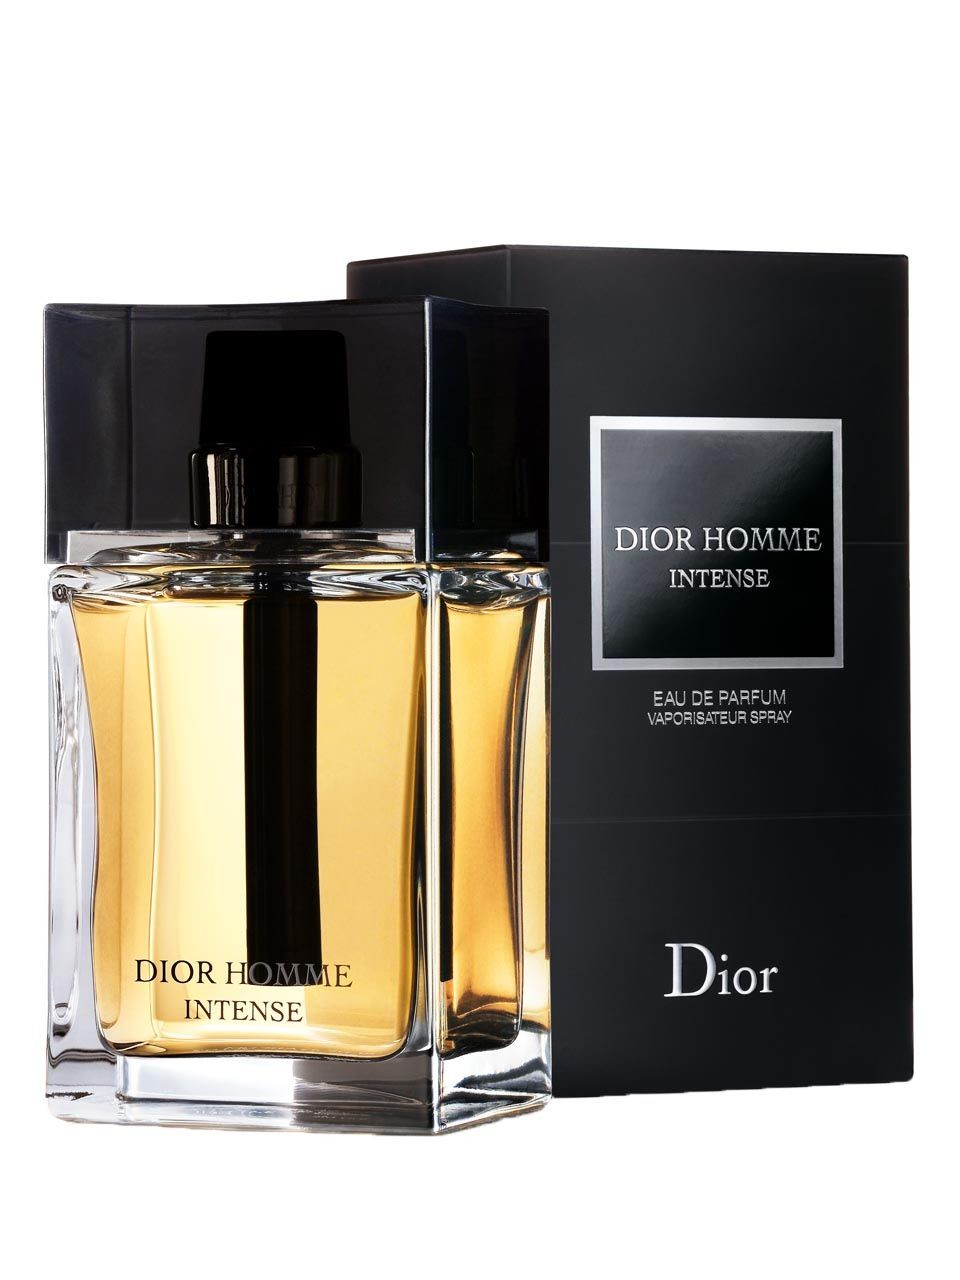 s936518263714895338_p324_i2_w960 5 Best-Selling Men Perfumes